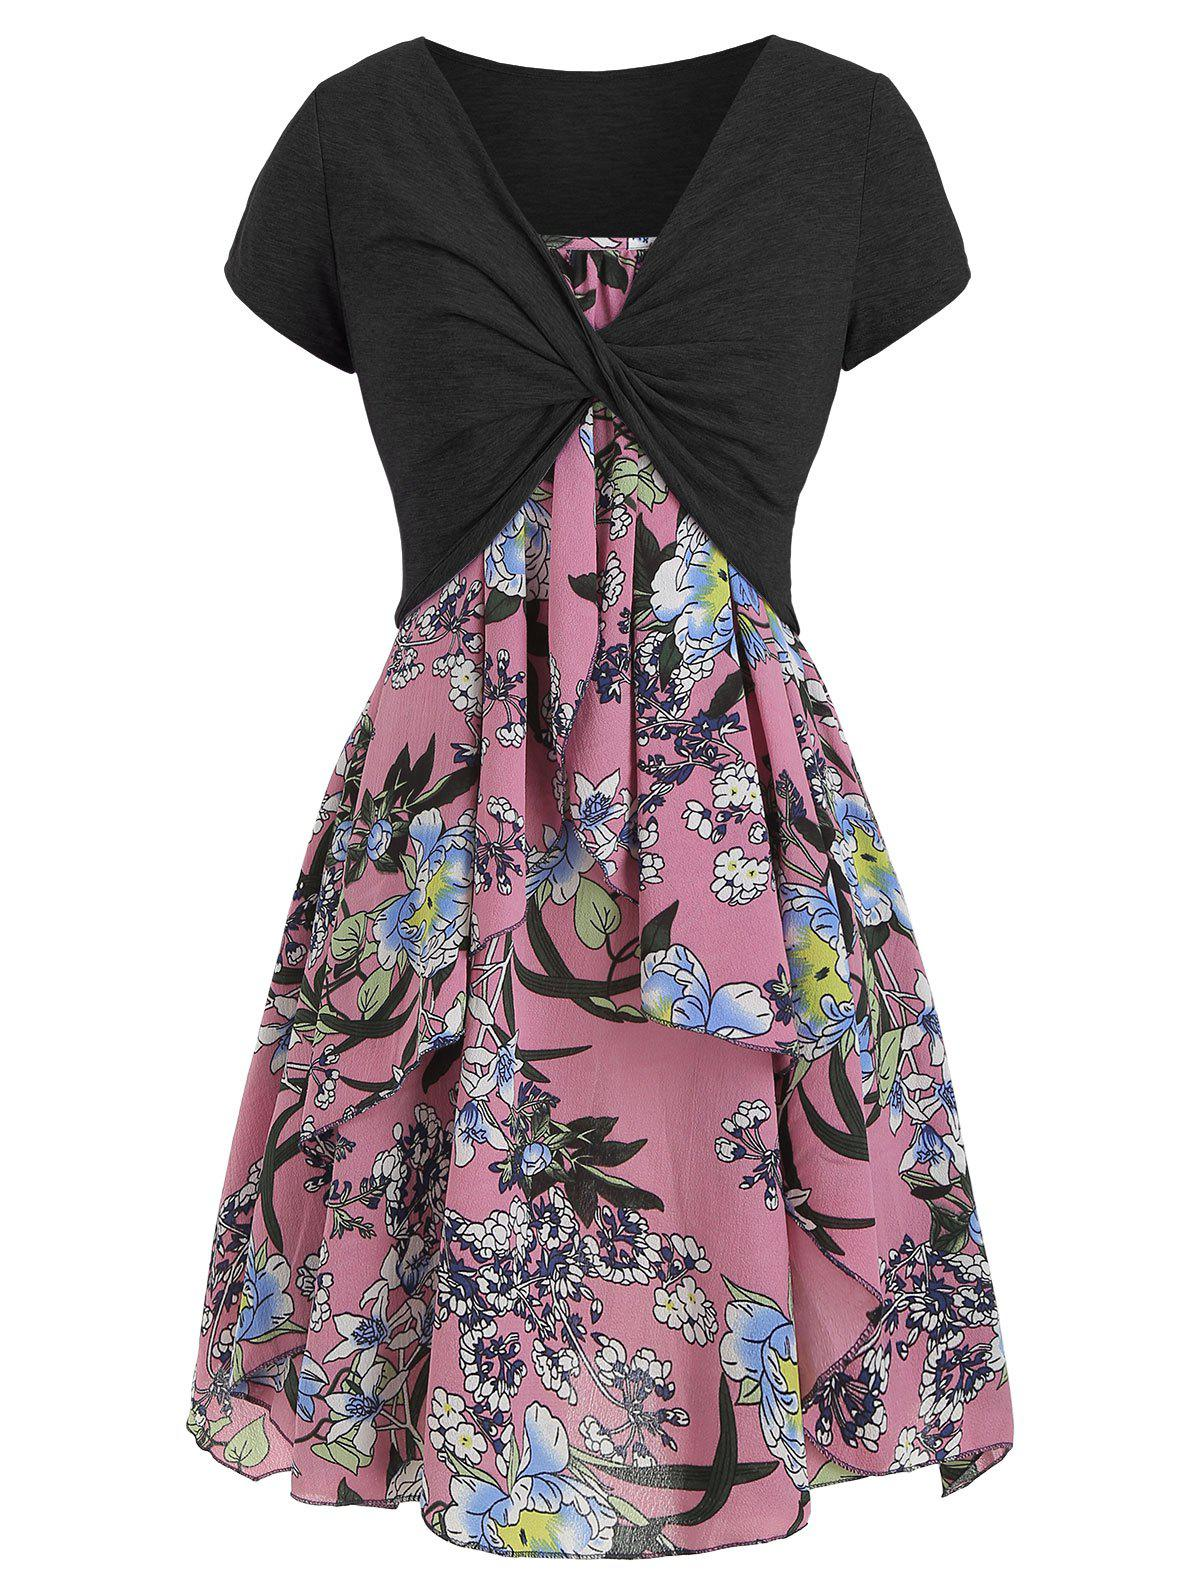 Buy Cami Flower Dress with Crop T-shirt